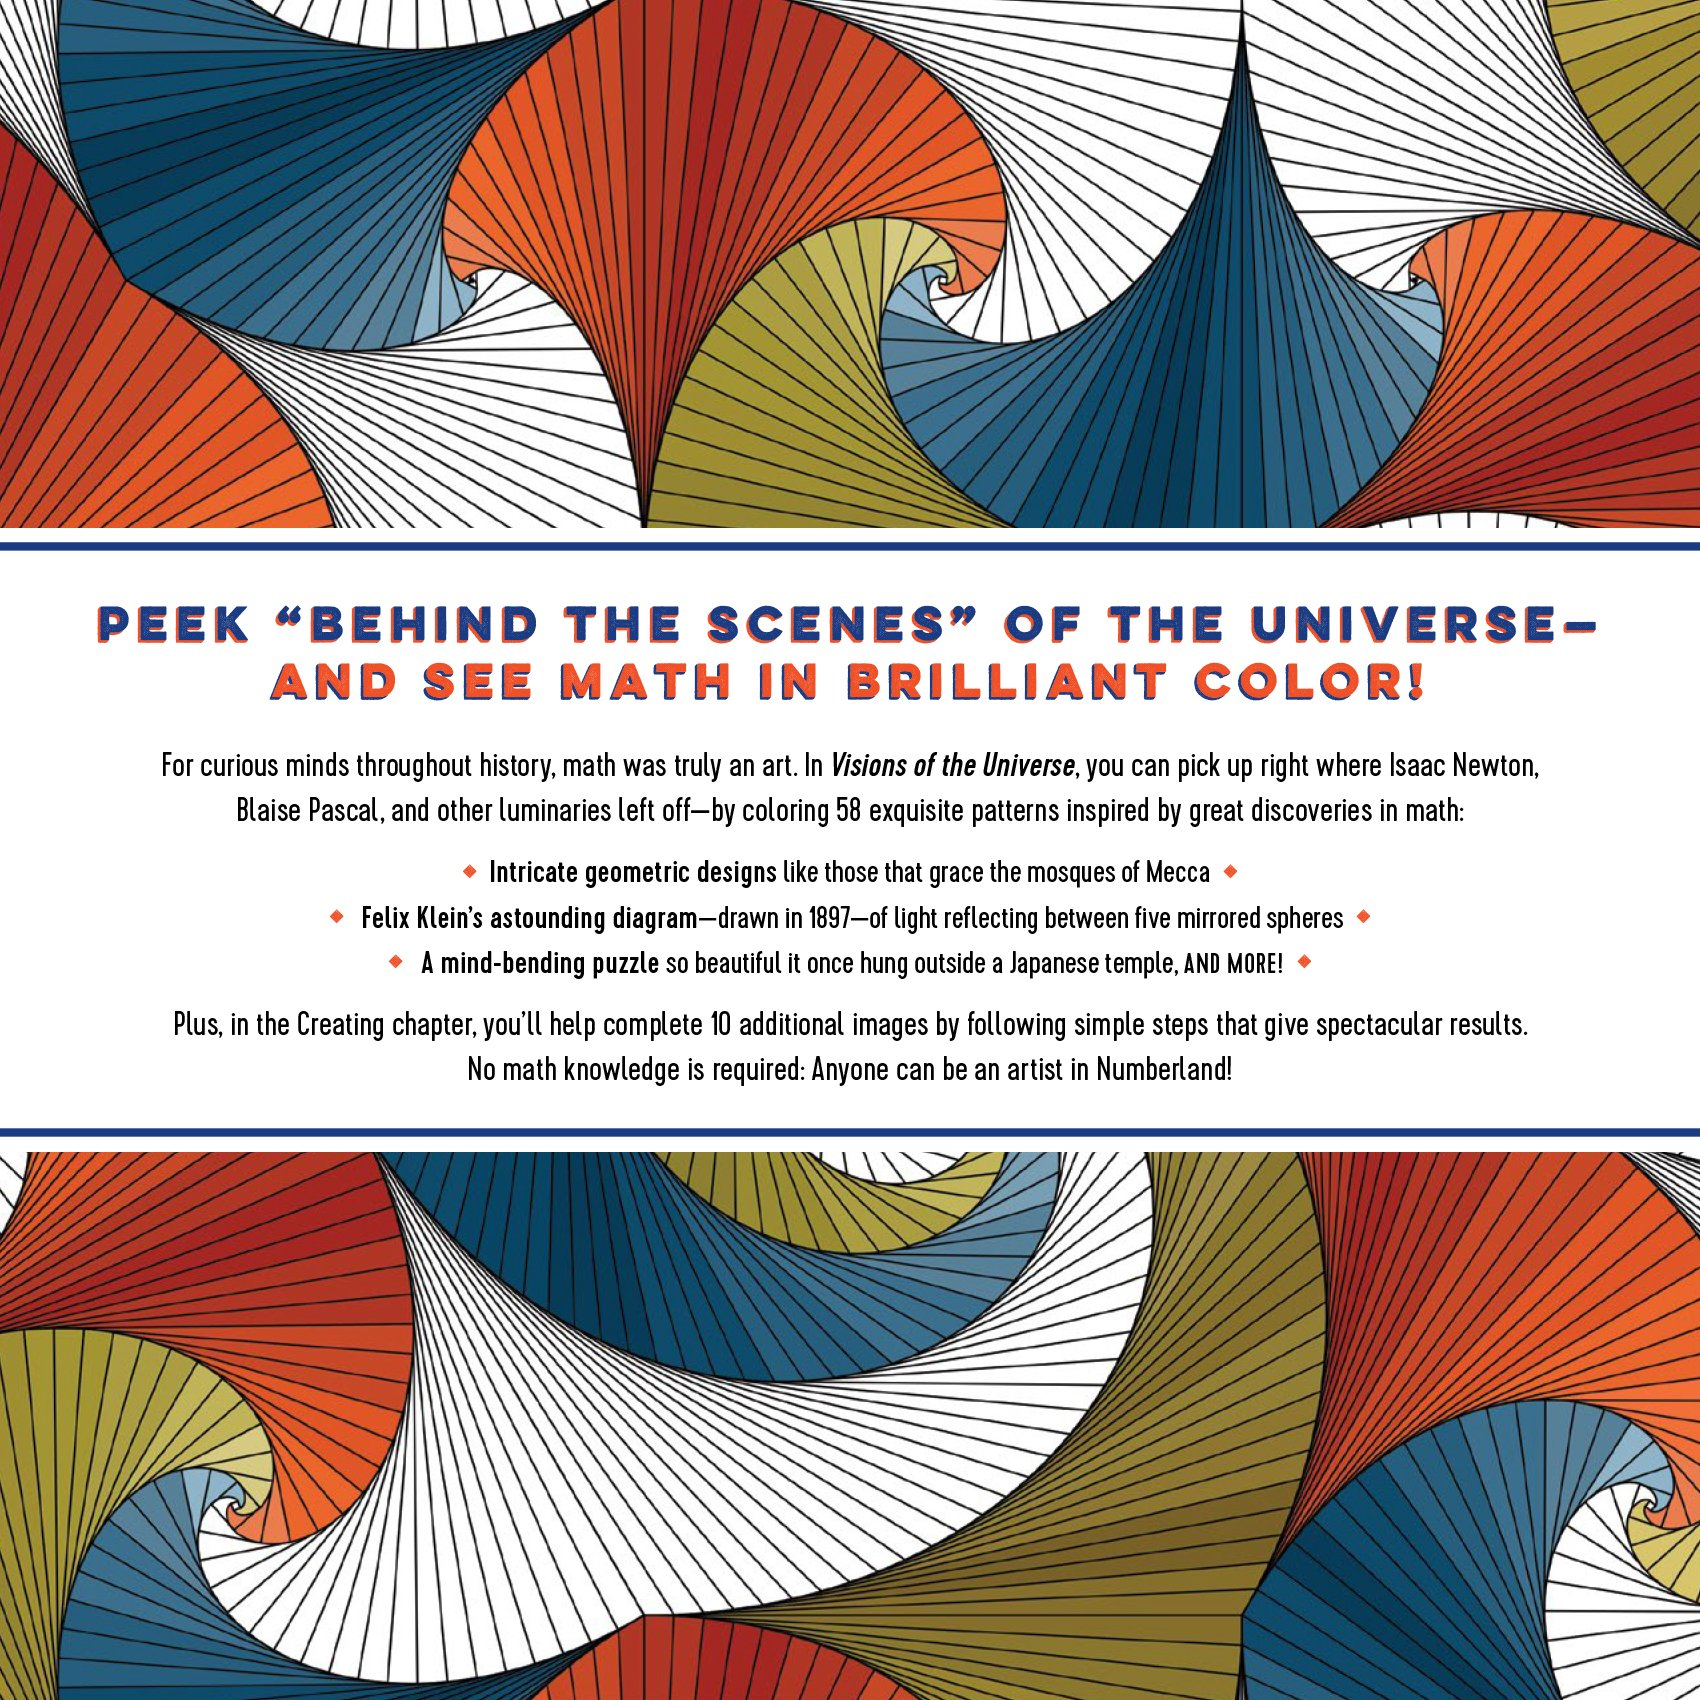 Coloring online universe - Visions Of The Universe A Coloring Journey Through Math S Great Mysteries Alex Bellos Edmund Harriss 9781615193677 Amazon Com Books